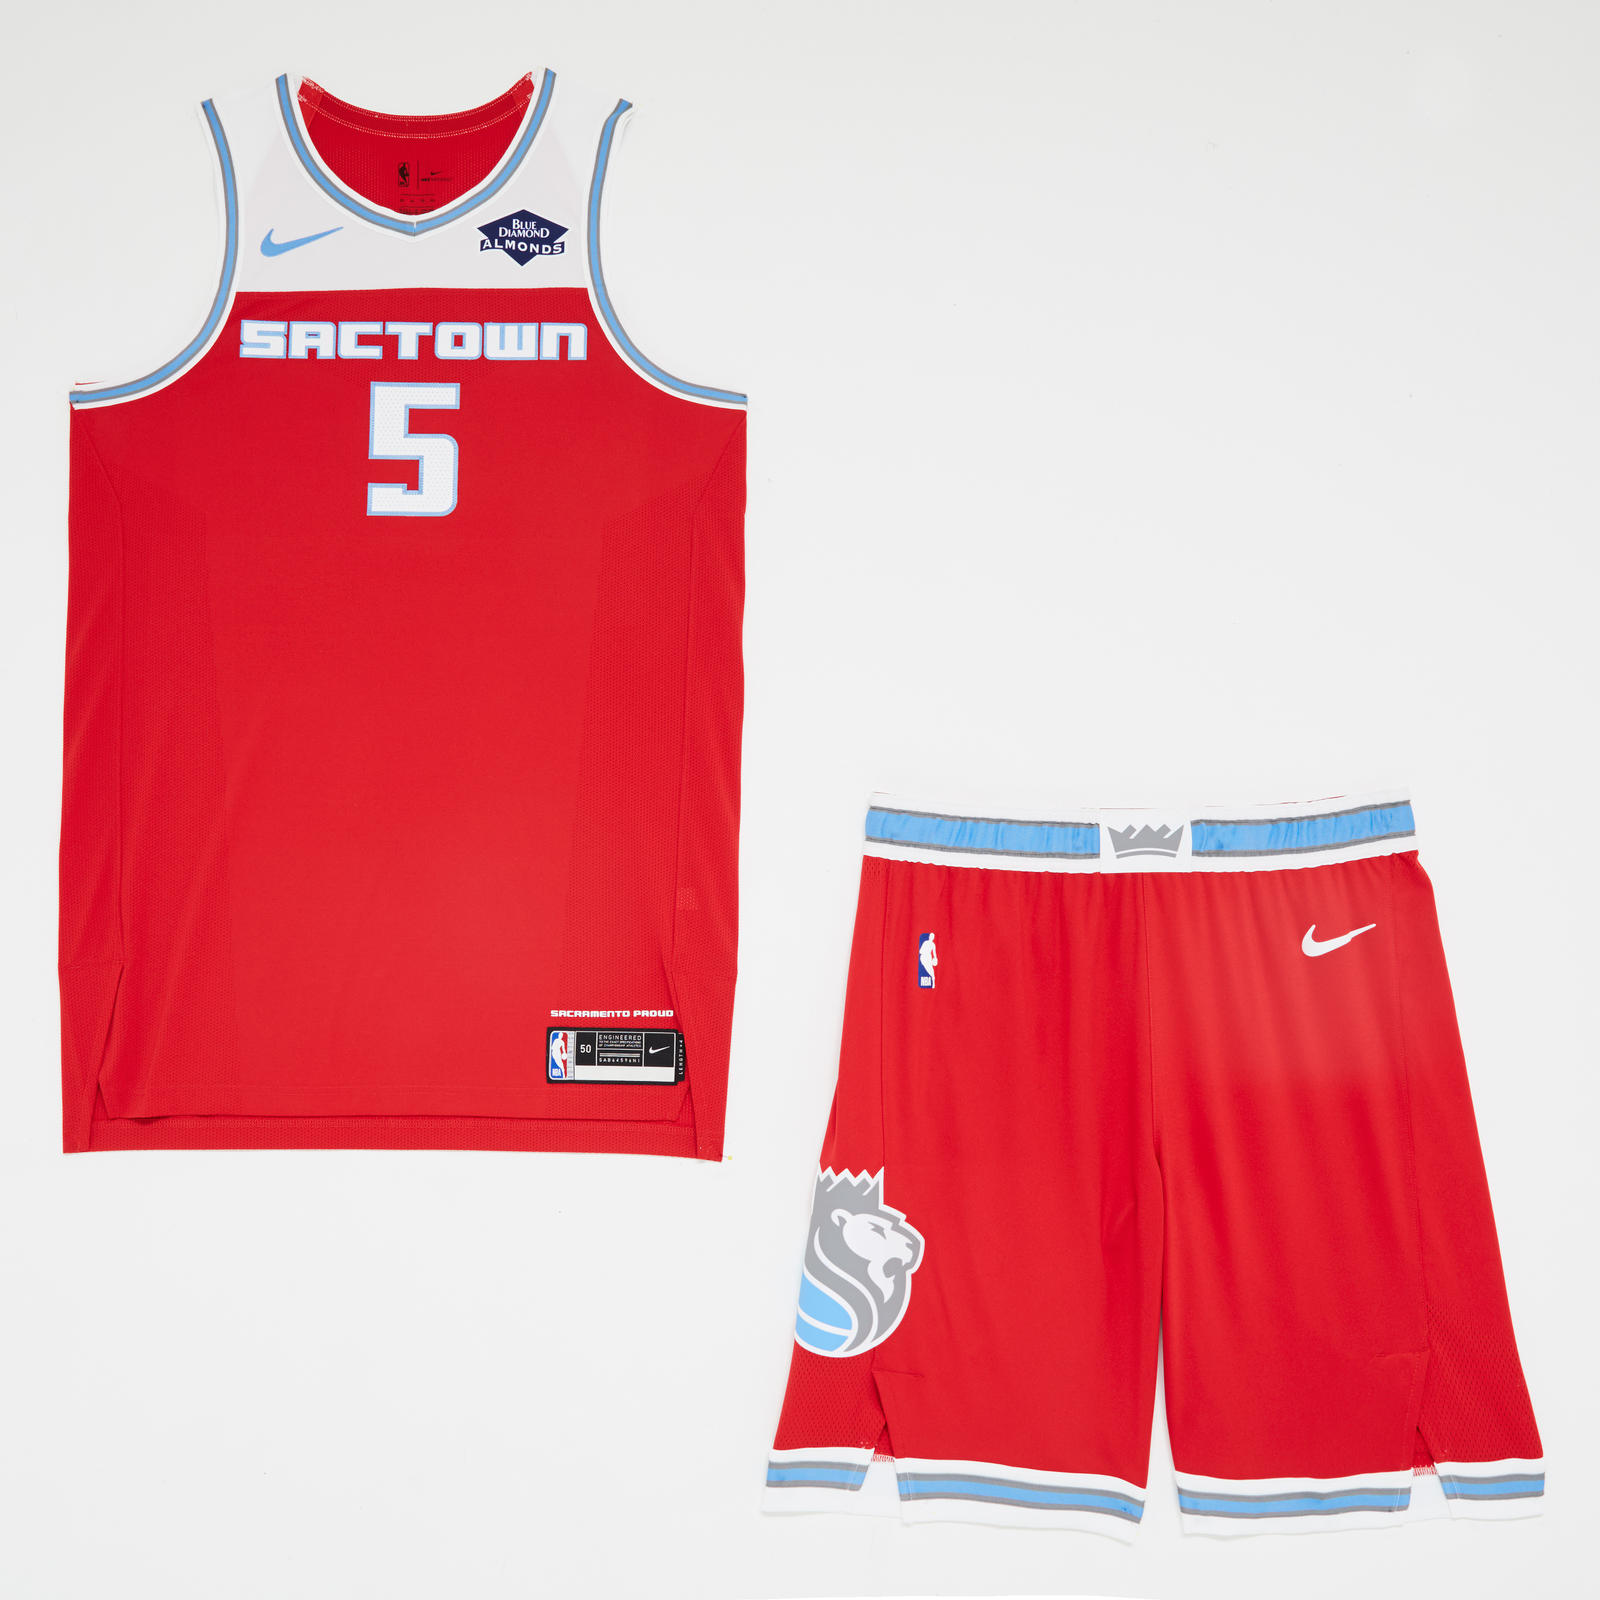 City Edition Jerseys - November 20 Embargo 11